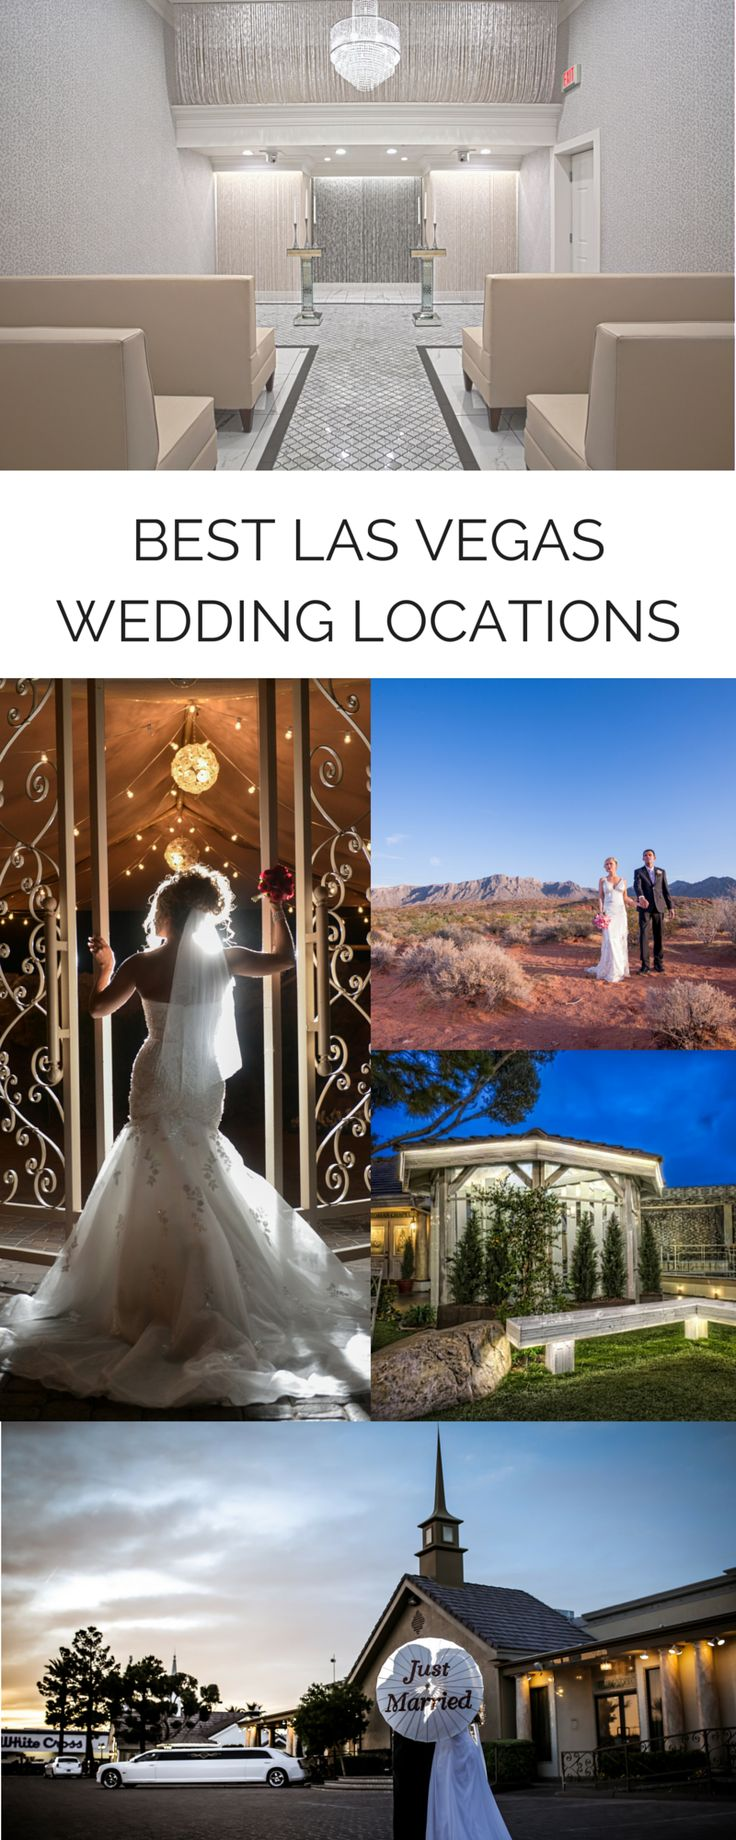 las vegas packages vegas wedding packages Best Las Vegas Wedding Venues and Ceremony Locations Find out which Vegas Venue has the